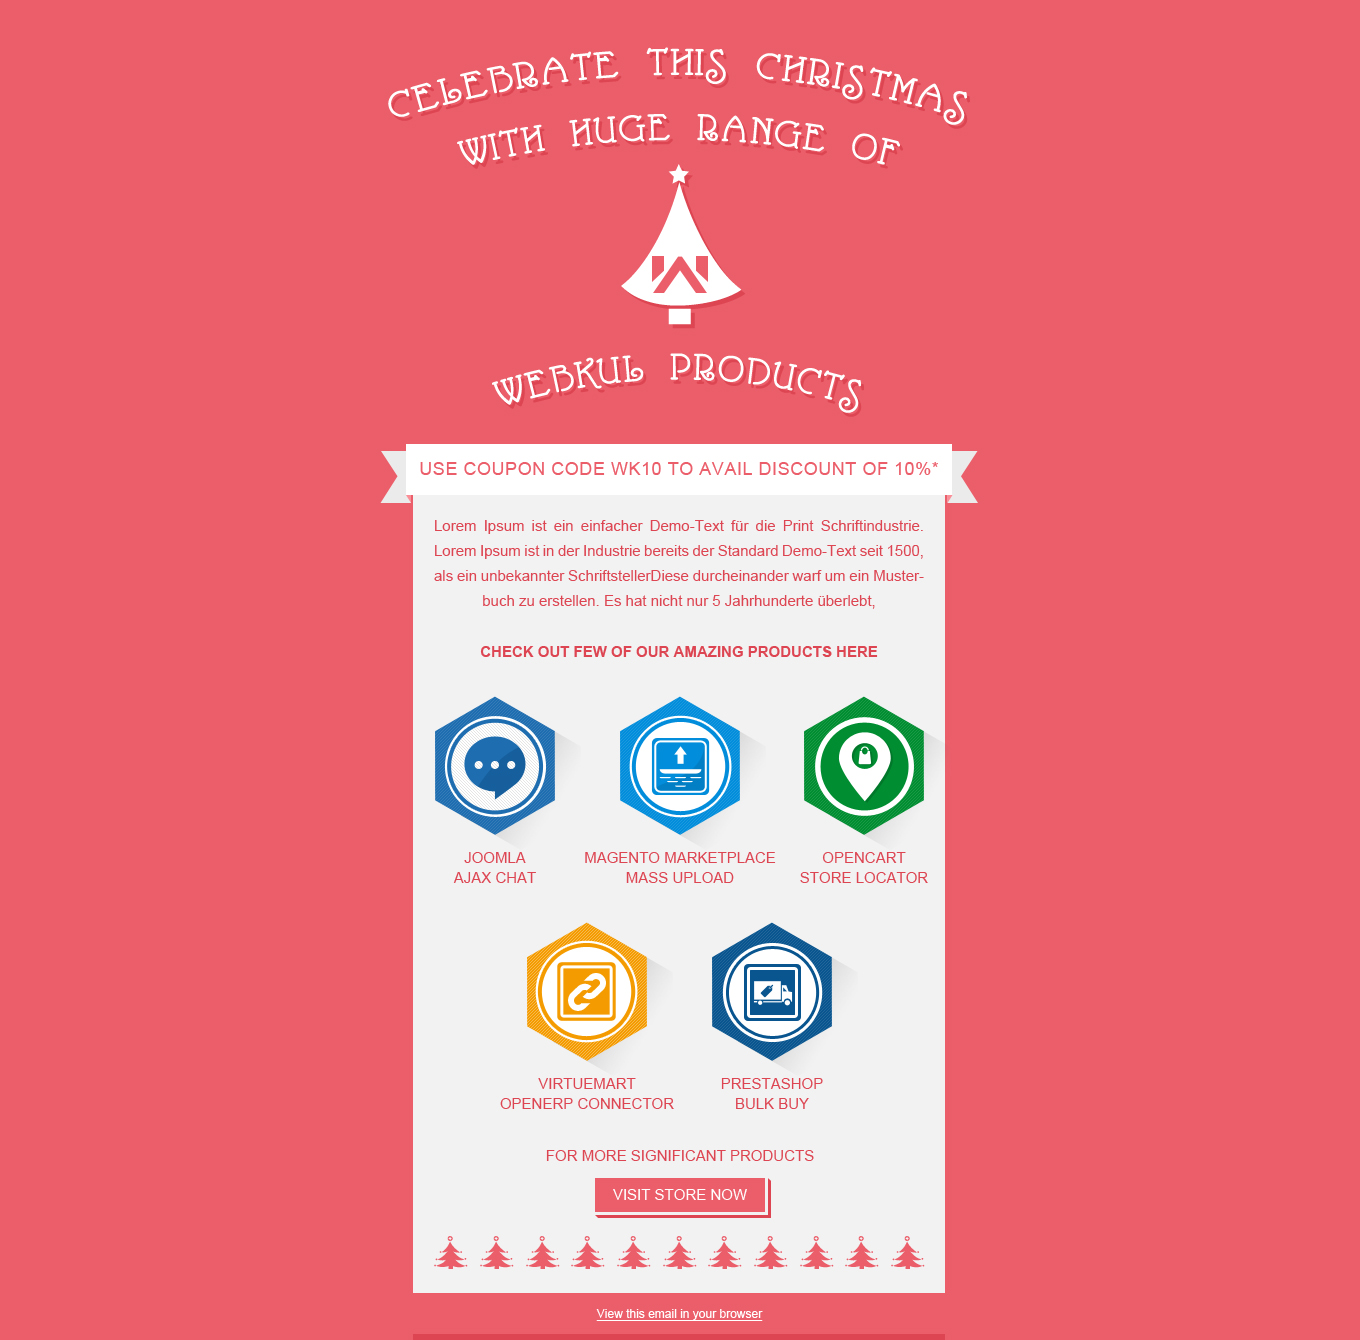 free christmas and new year newsletter template first of all a very happy and prosperous christmas to all the reader of webkul blog and users of our